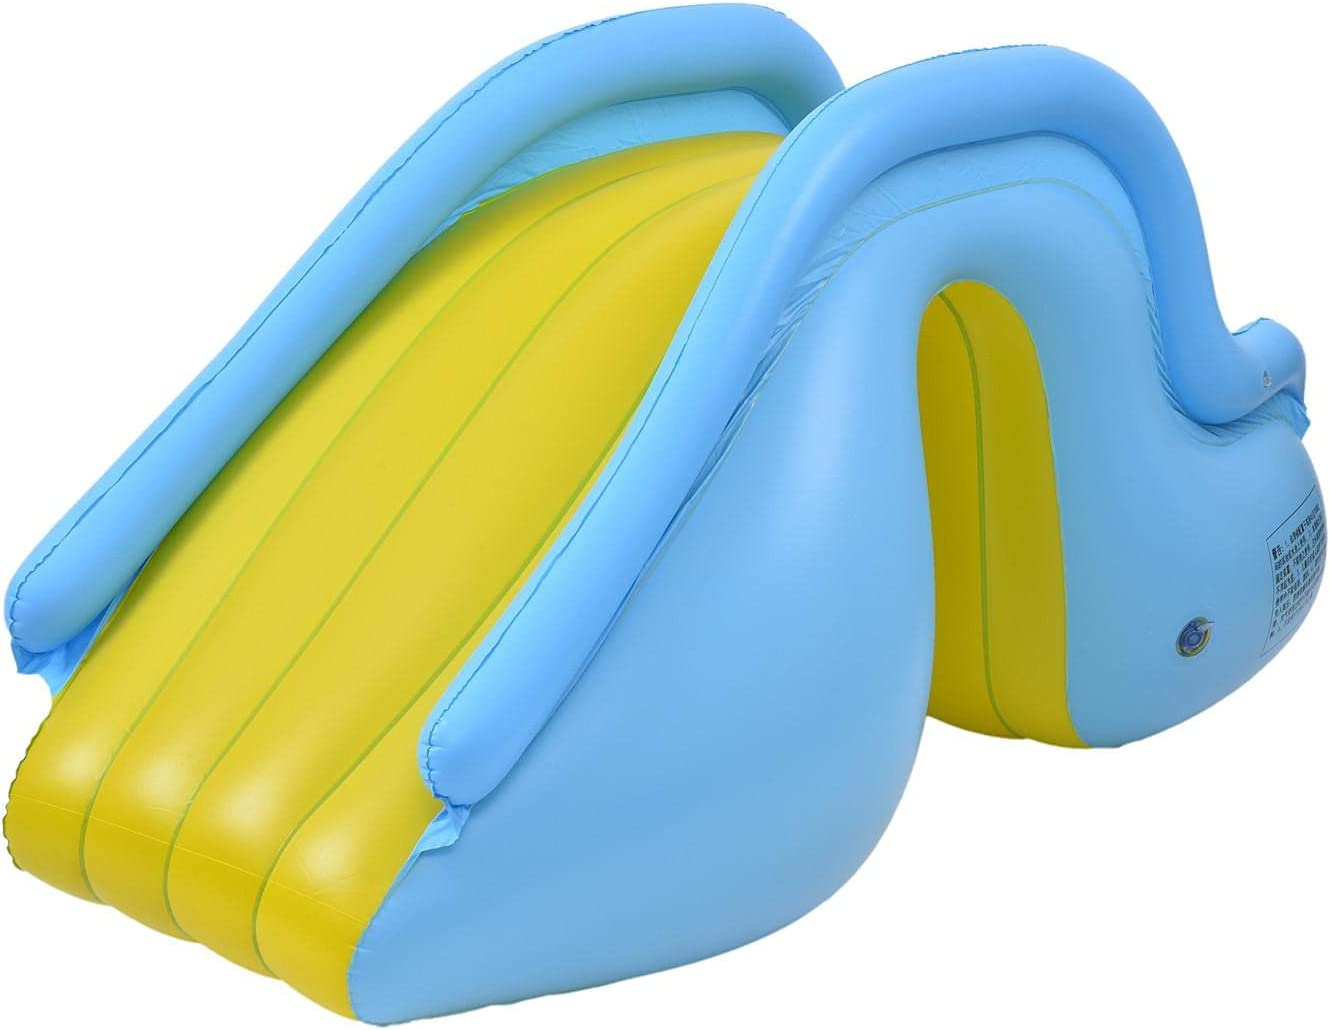 Inflatable Waterslide Wider Steps Blob 2021new Genuine shipping free Climbin Water